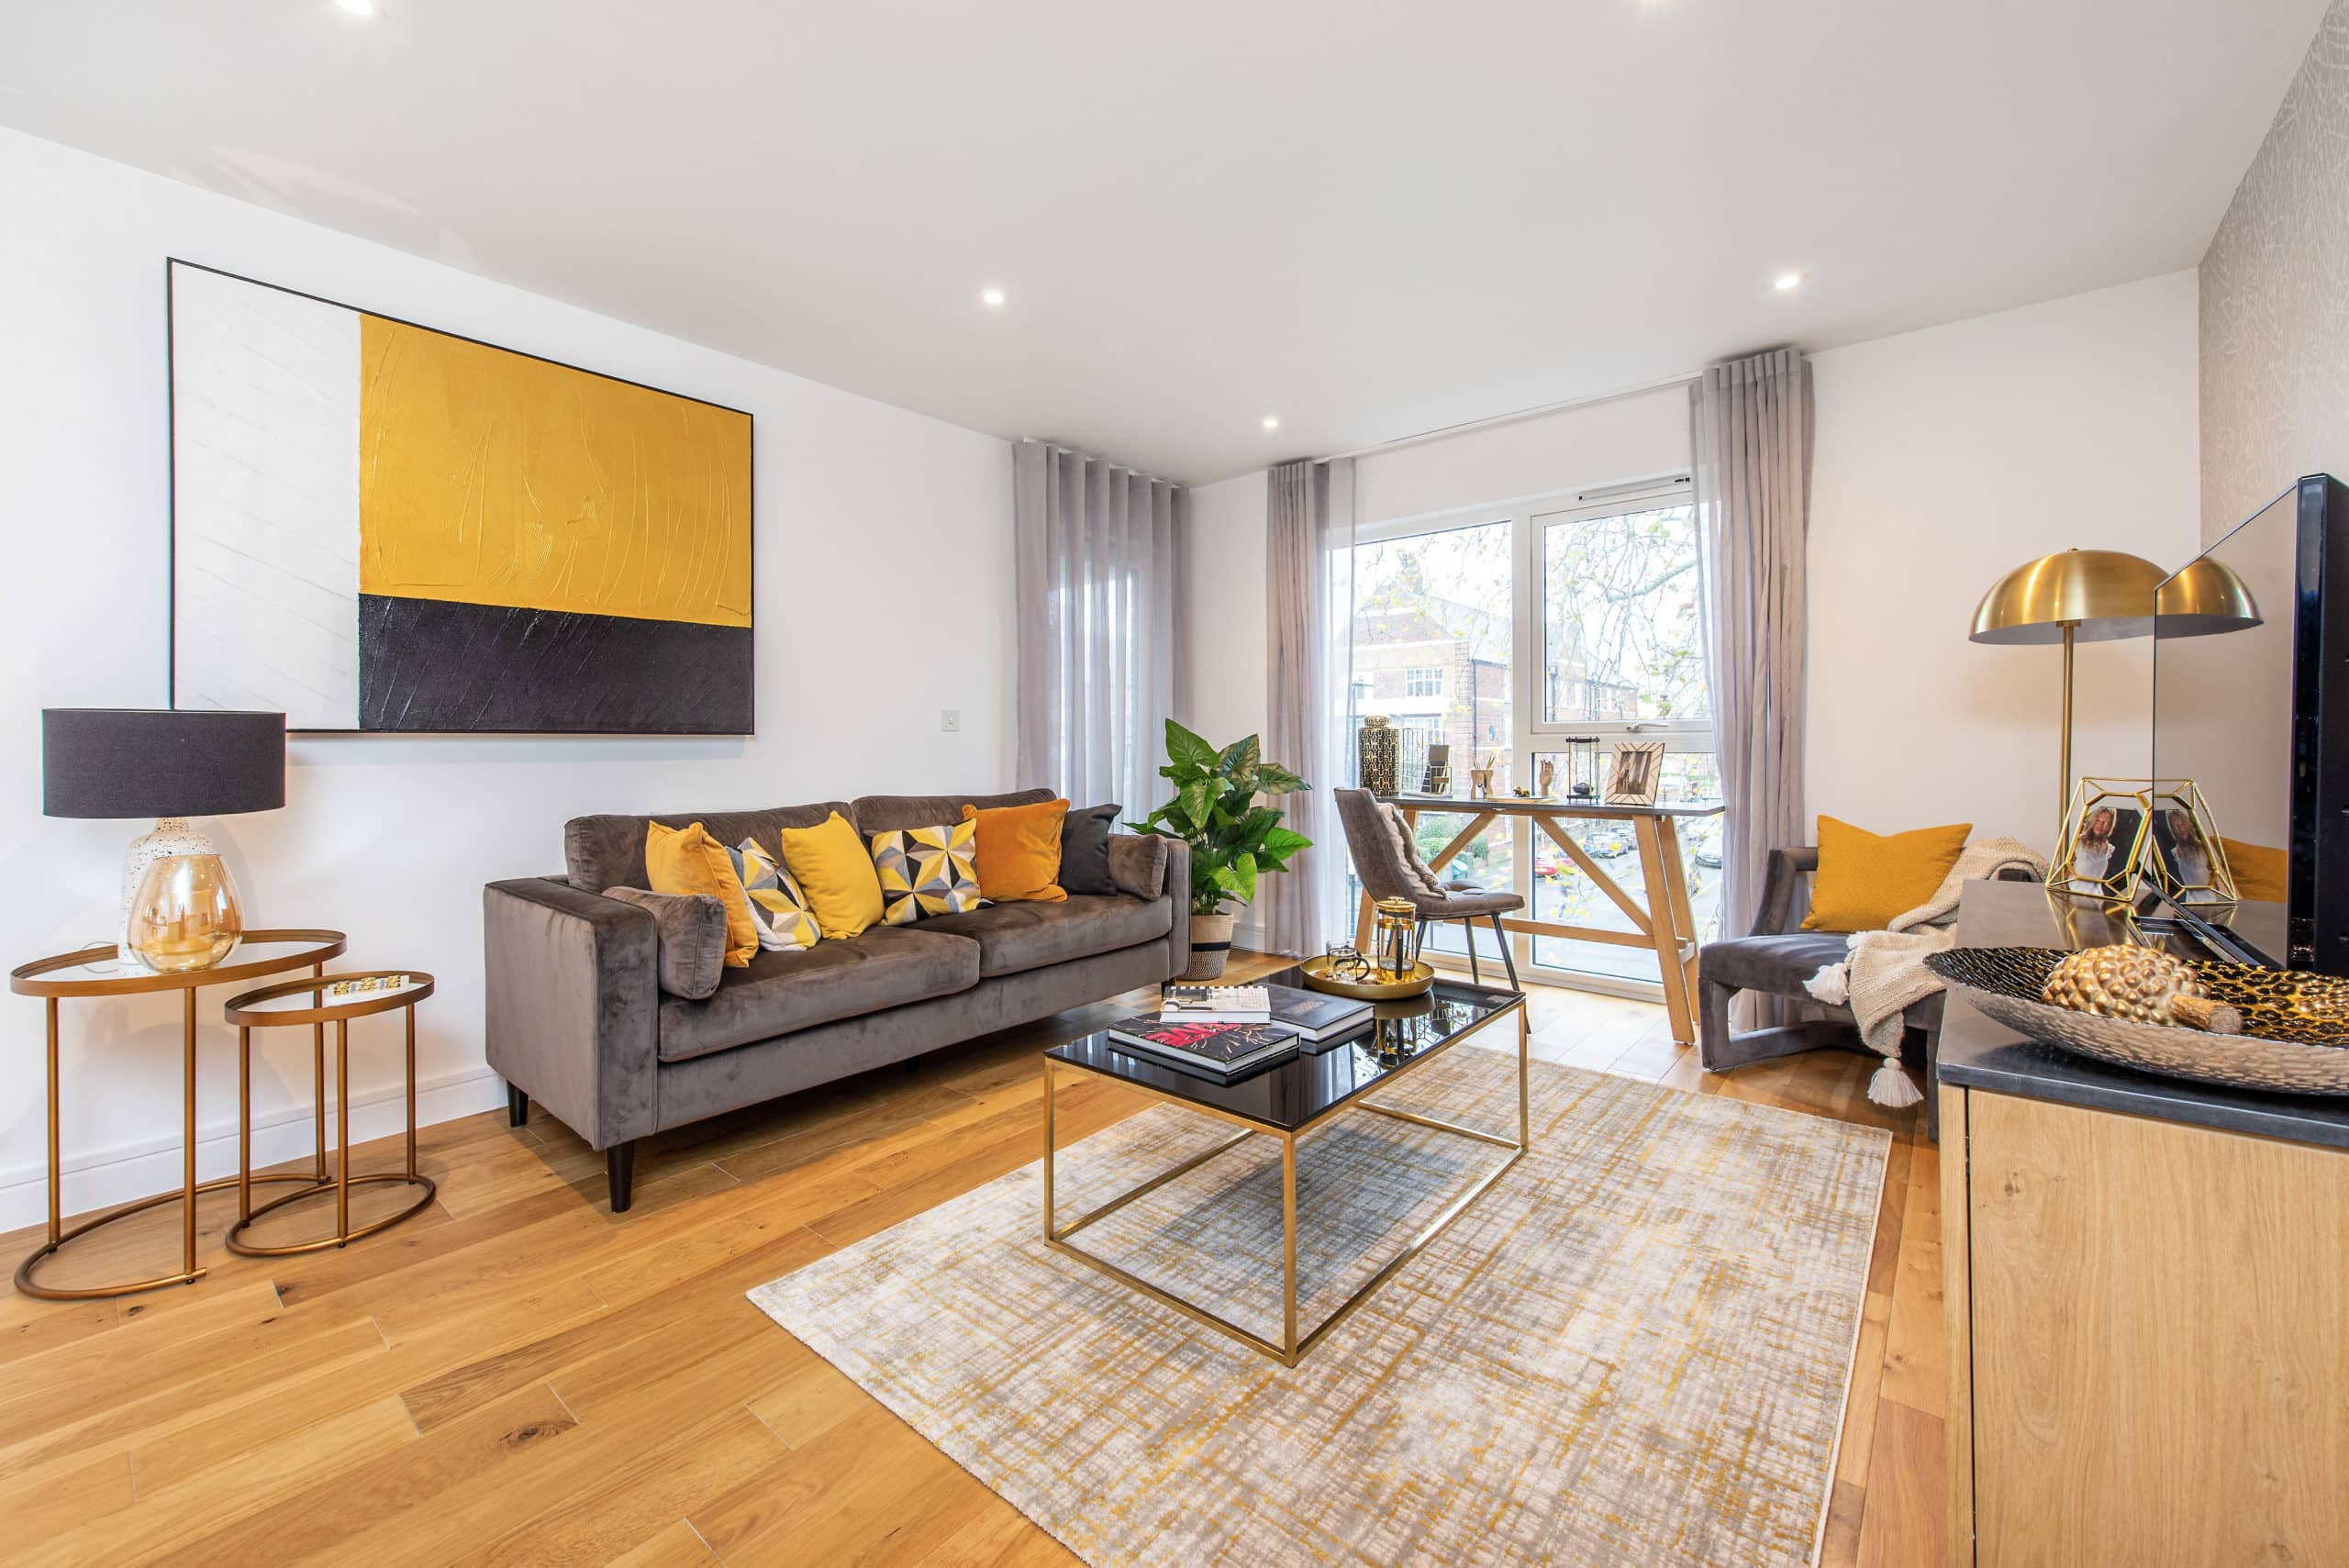 Internal show home photography of SO Resi's Clapham Park - Shared Ownership homes available on Share to Buy